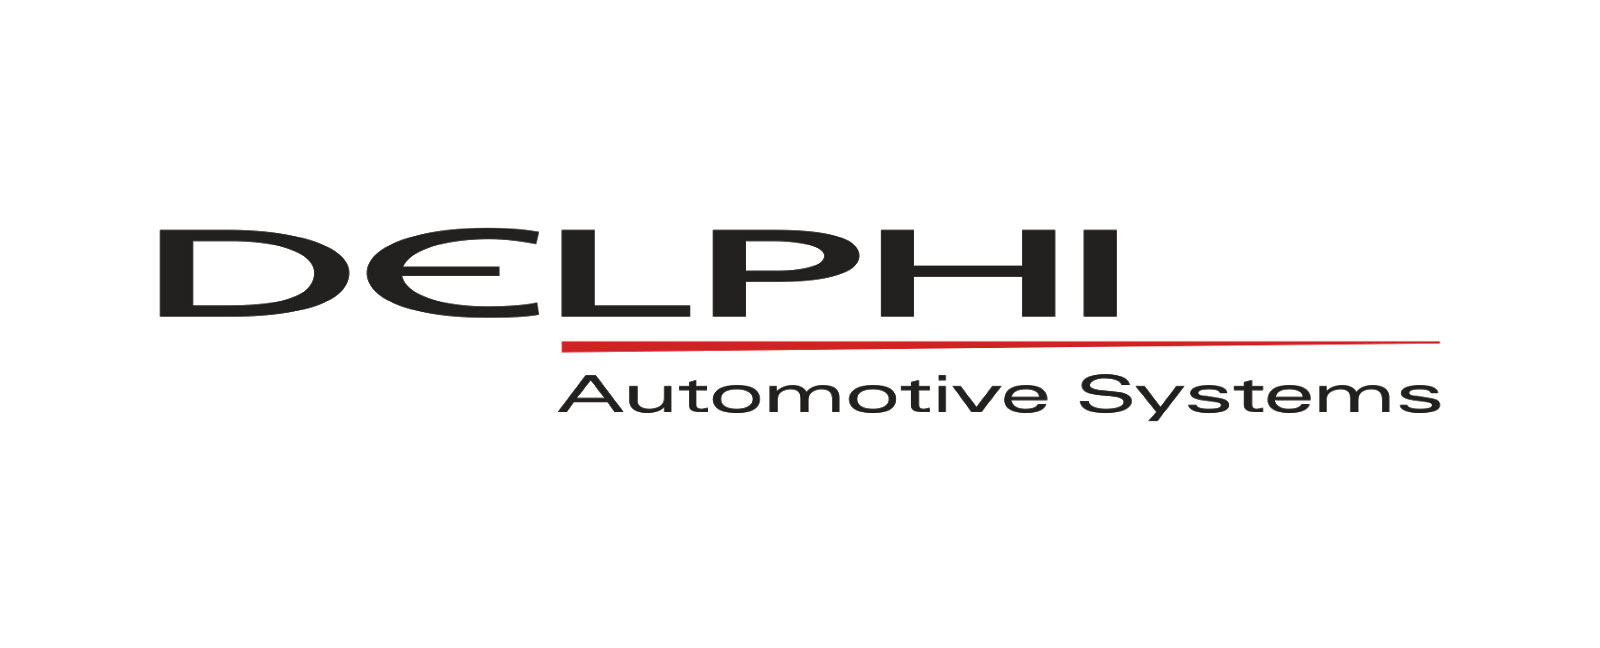 1995 1999 New Beginning With A Solid Foundation Delphi